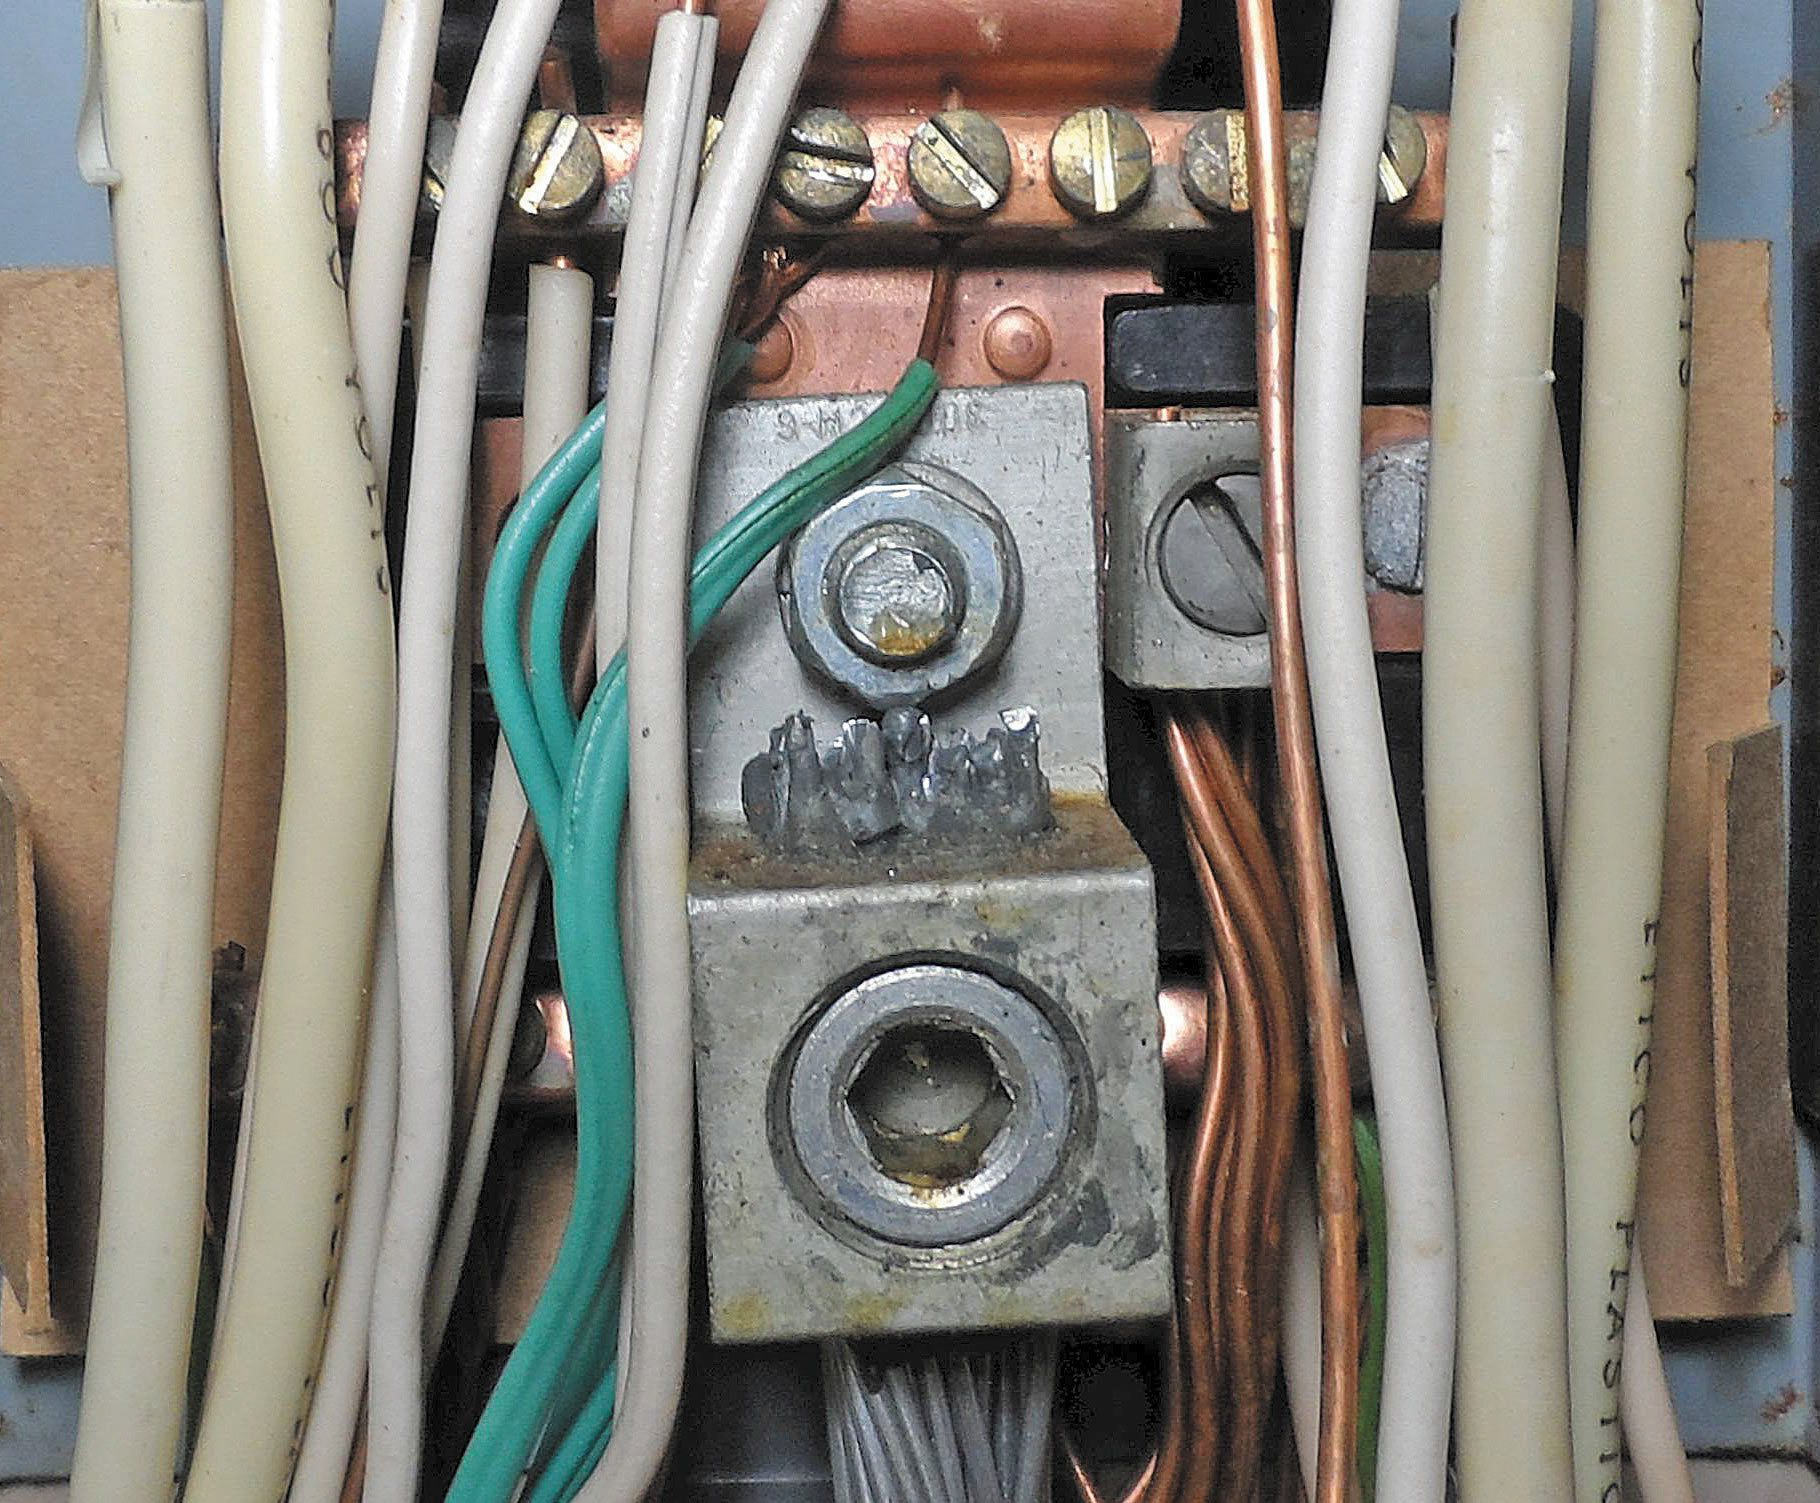 aluminum wires and unions